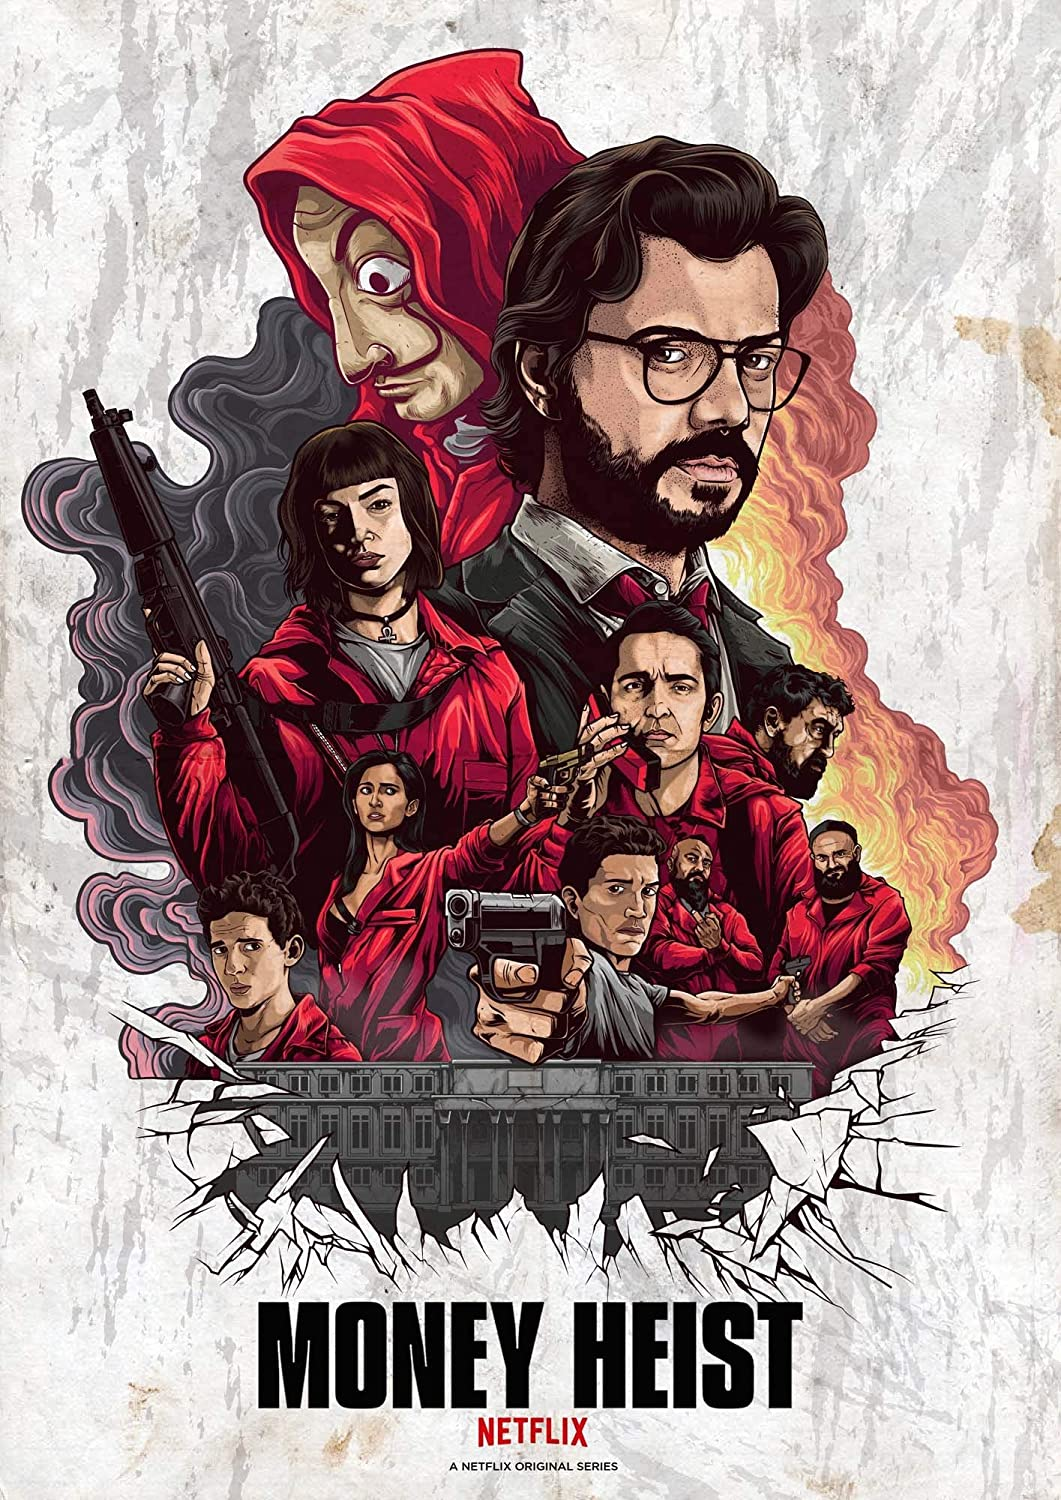 Money Heist Season 1-2-3-4 1080p NF WEB-DL HIN – TAM – TEL – ENG DD + 5.1 x264 | Telly | 25 GB | 18 GB | 17 GB | 17 GB |